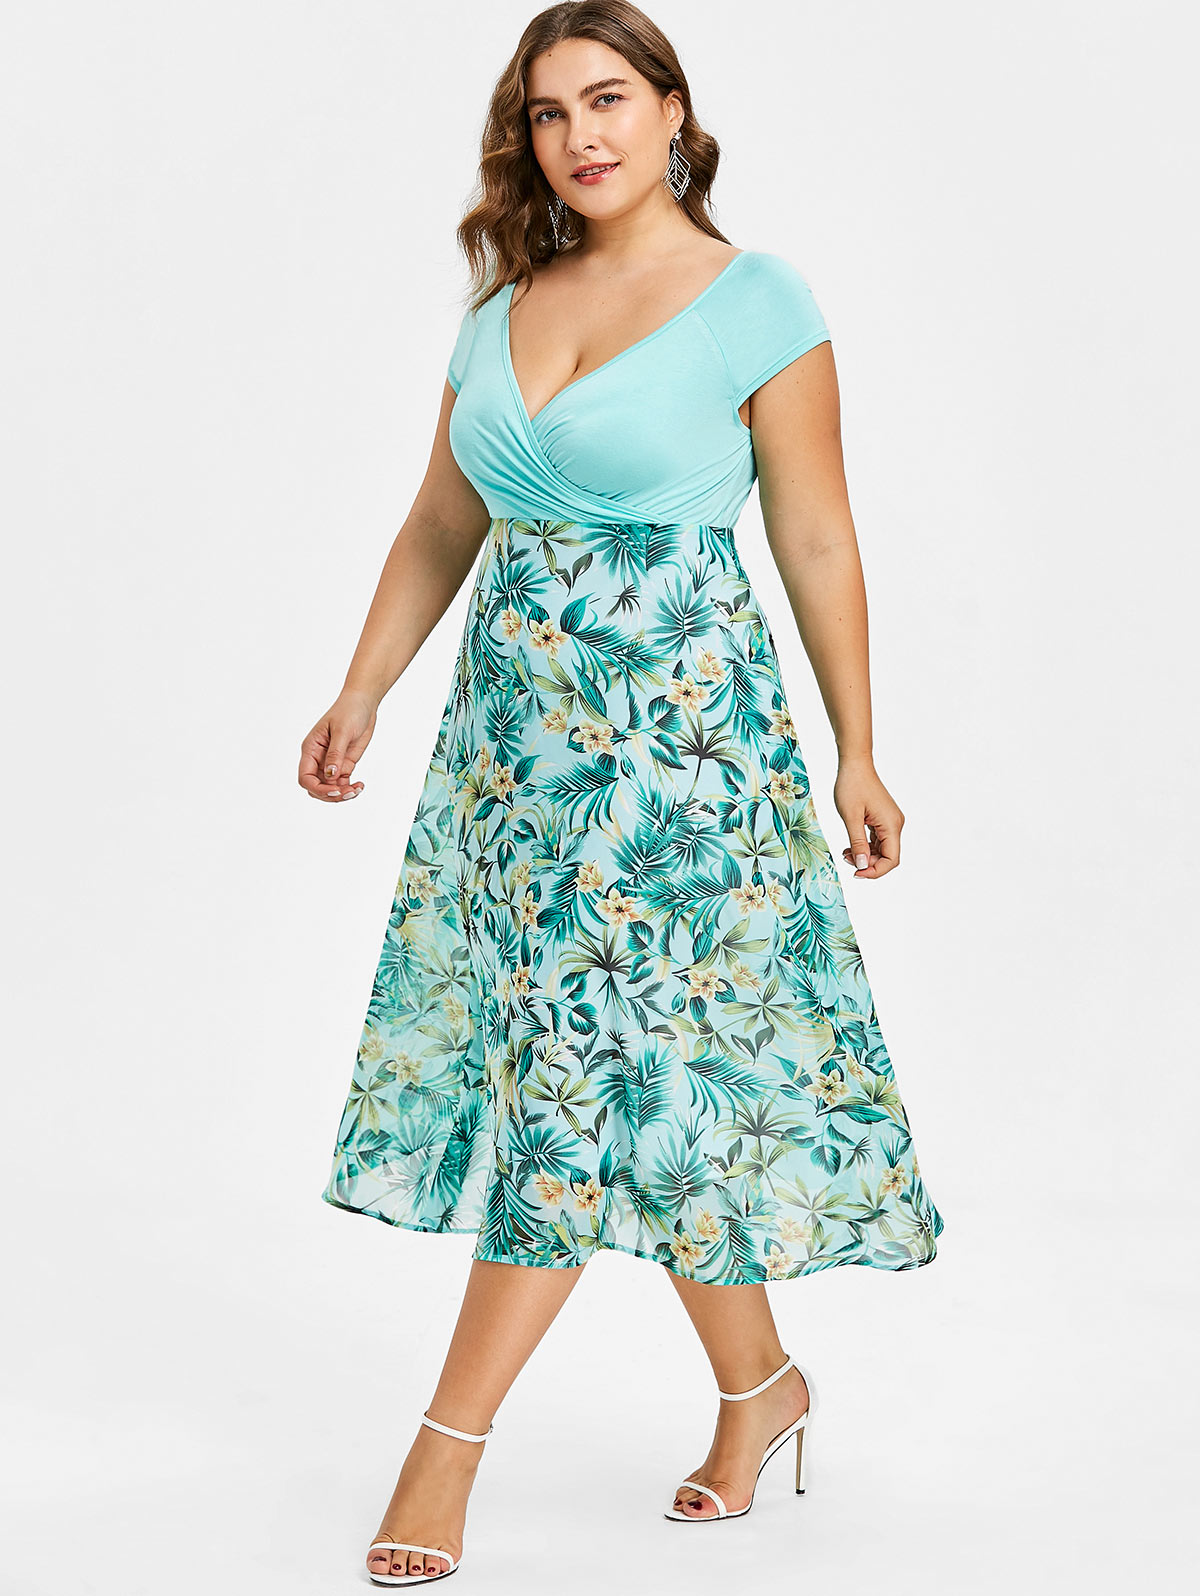 24fc129e27ad Details about Plus Size Flower Print Hawaiian Dress Midi A Line Surplice  Short Sleeve Dress